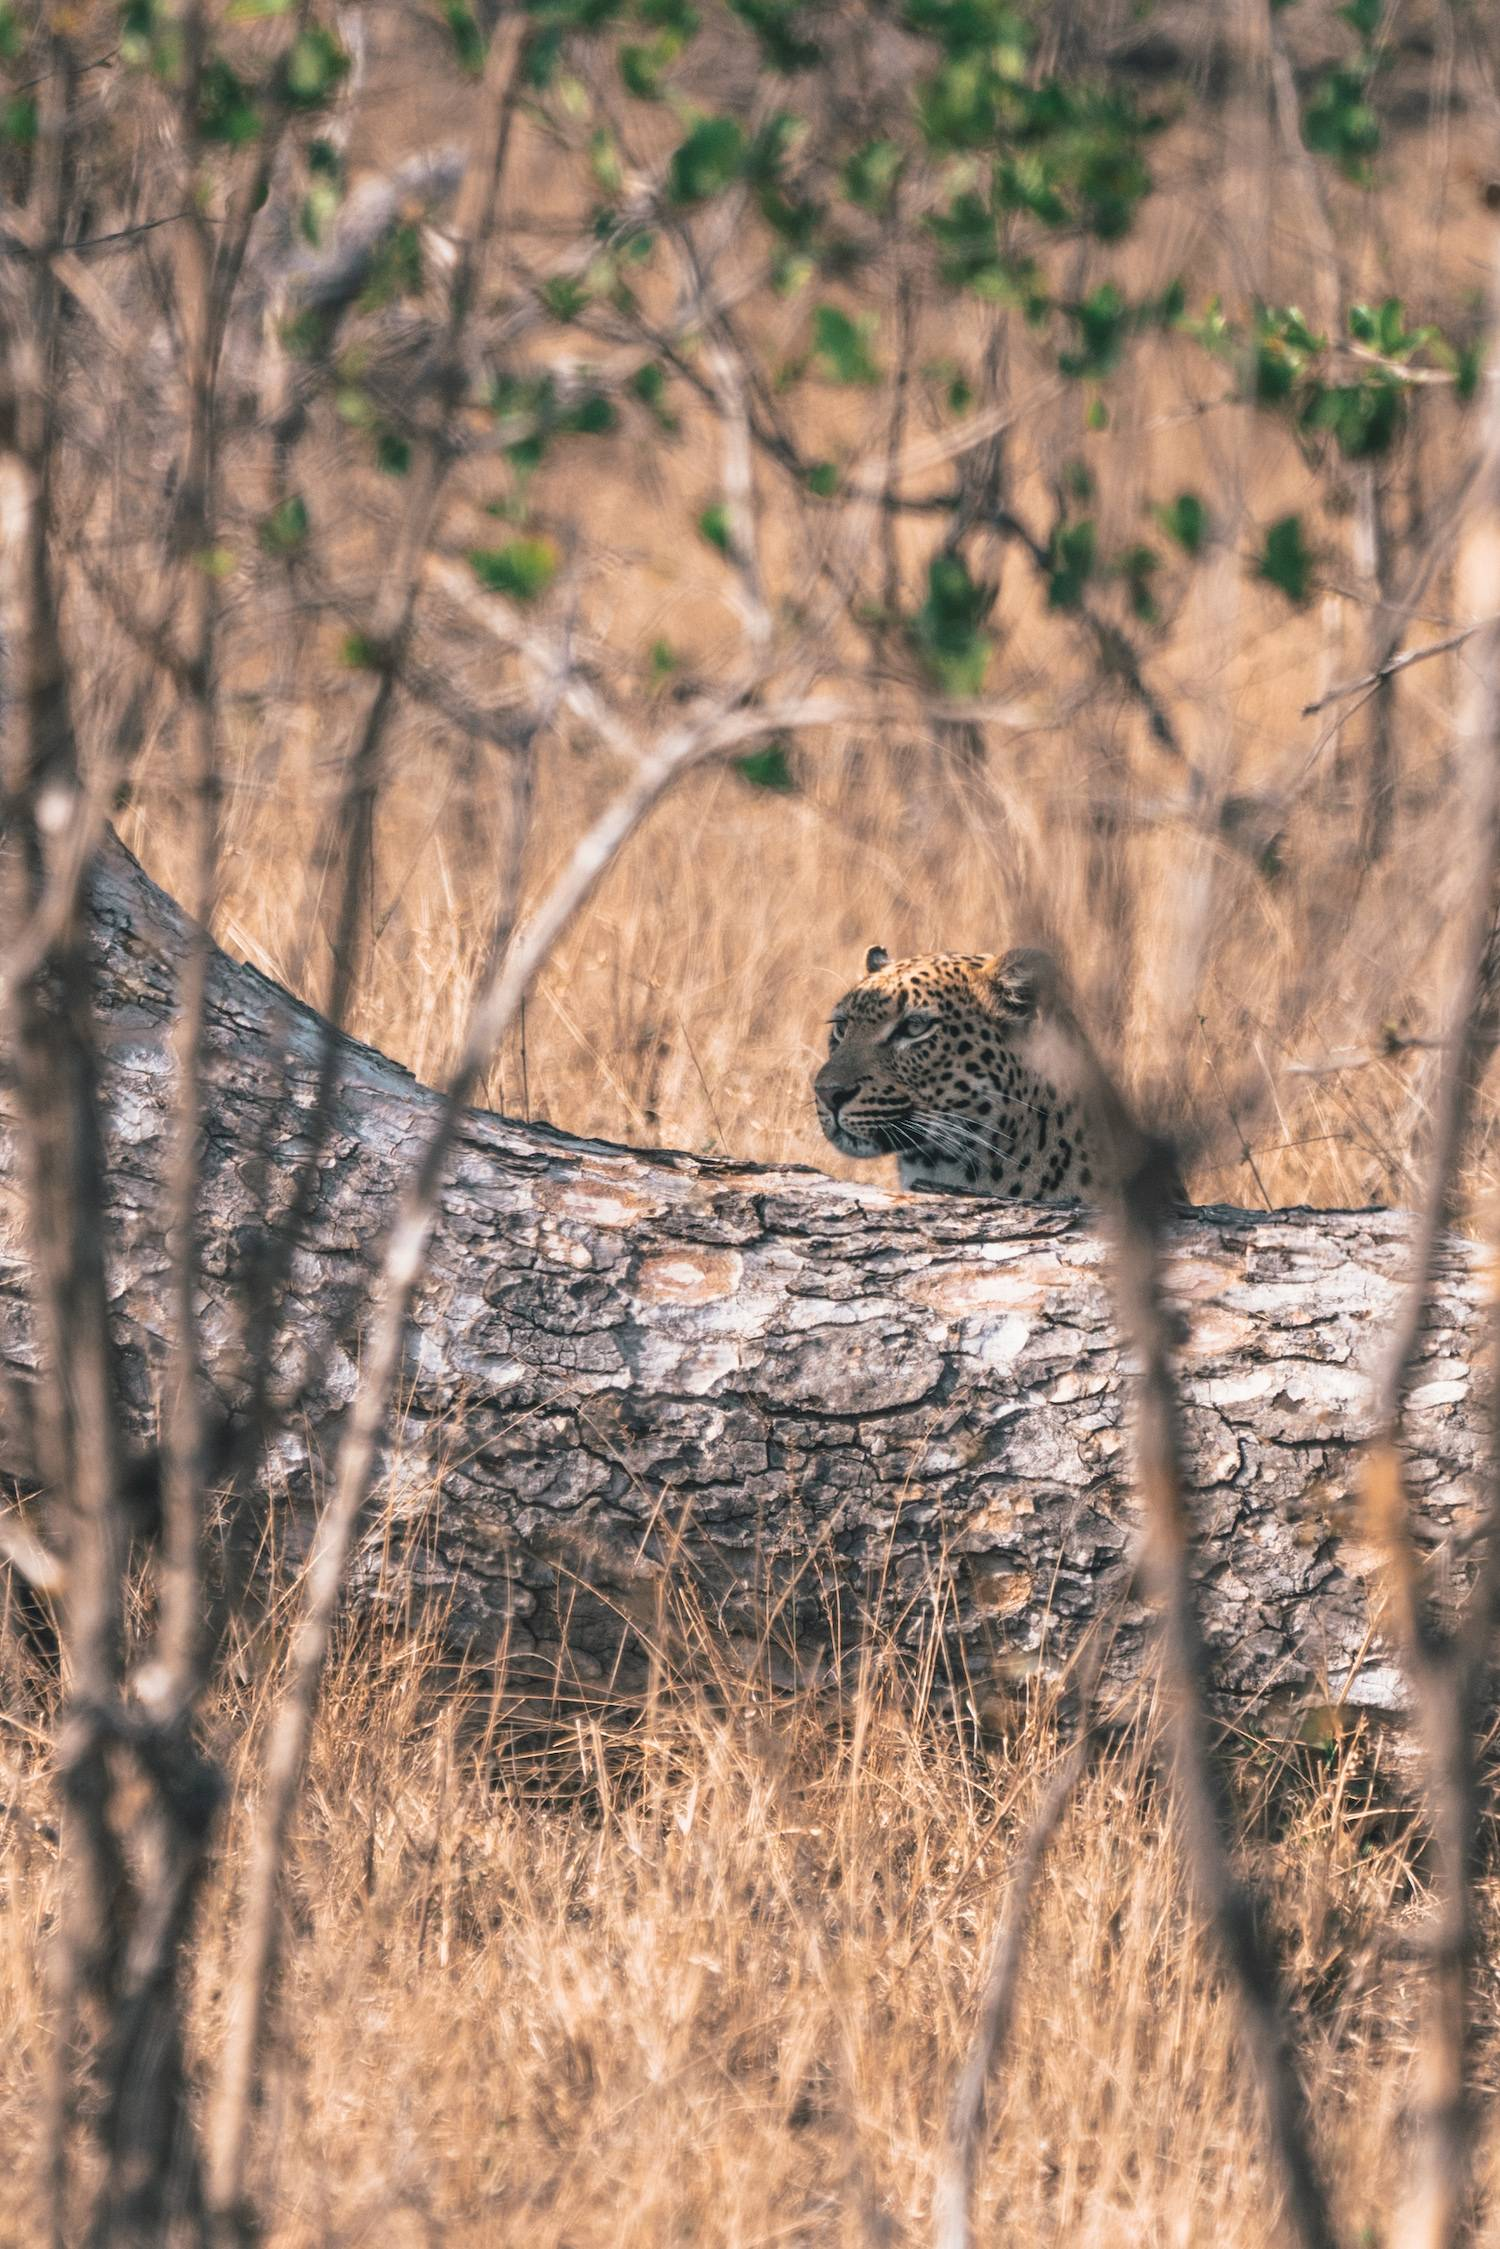 Leopard hiding in kruger national park